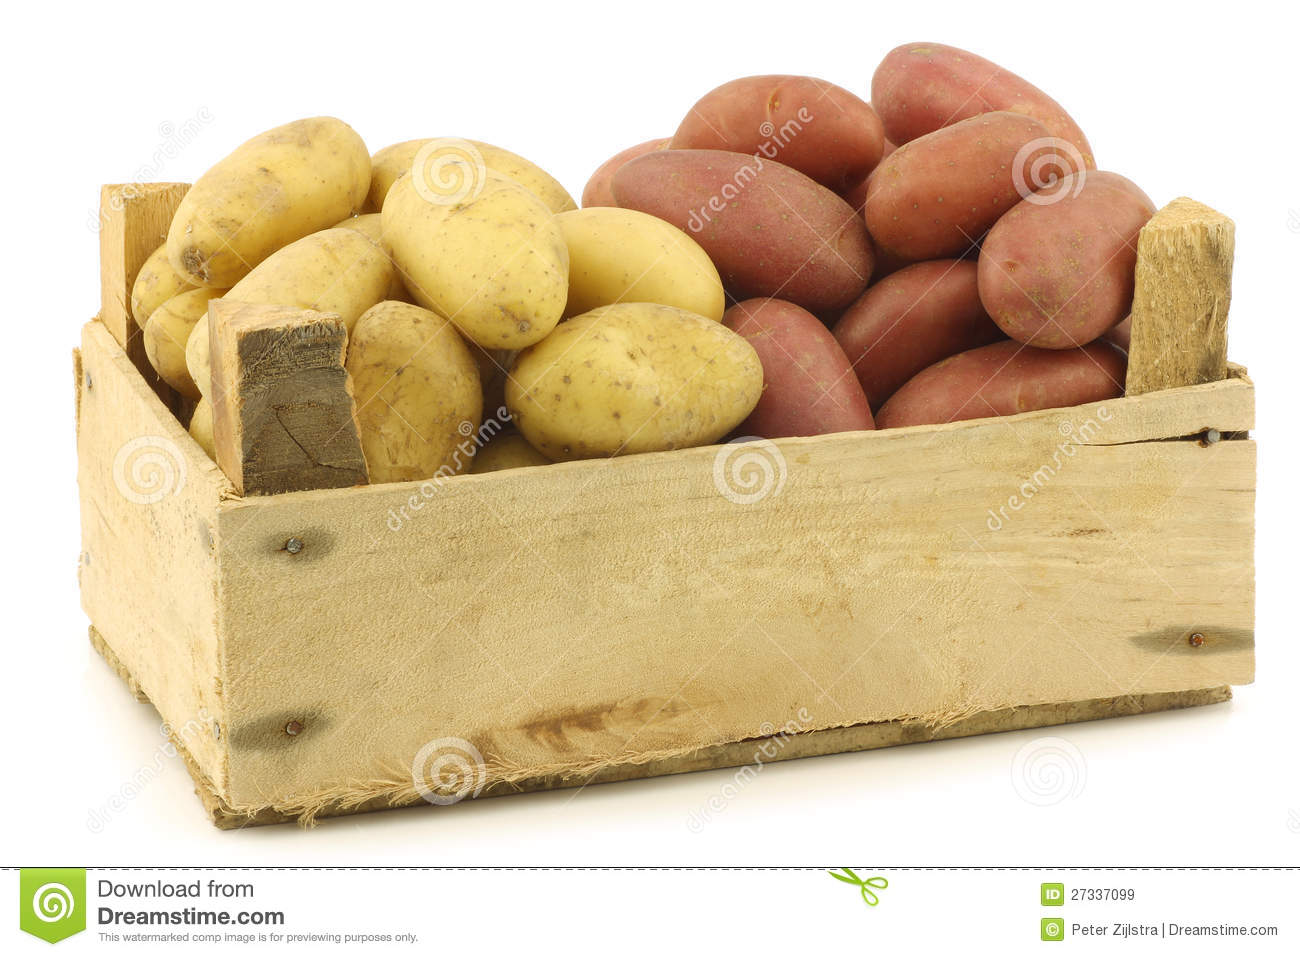 how to cook small yellow potatoes